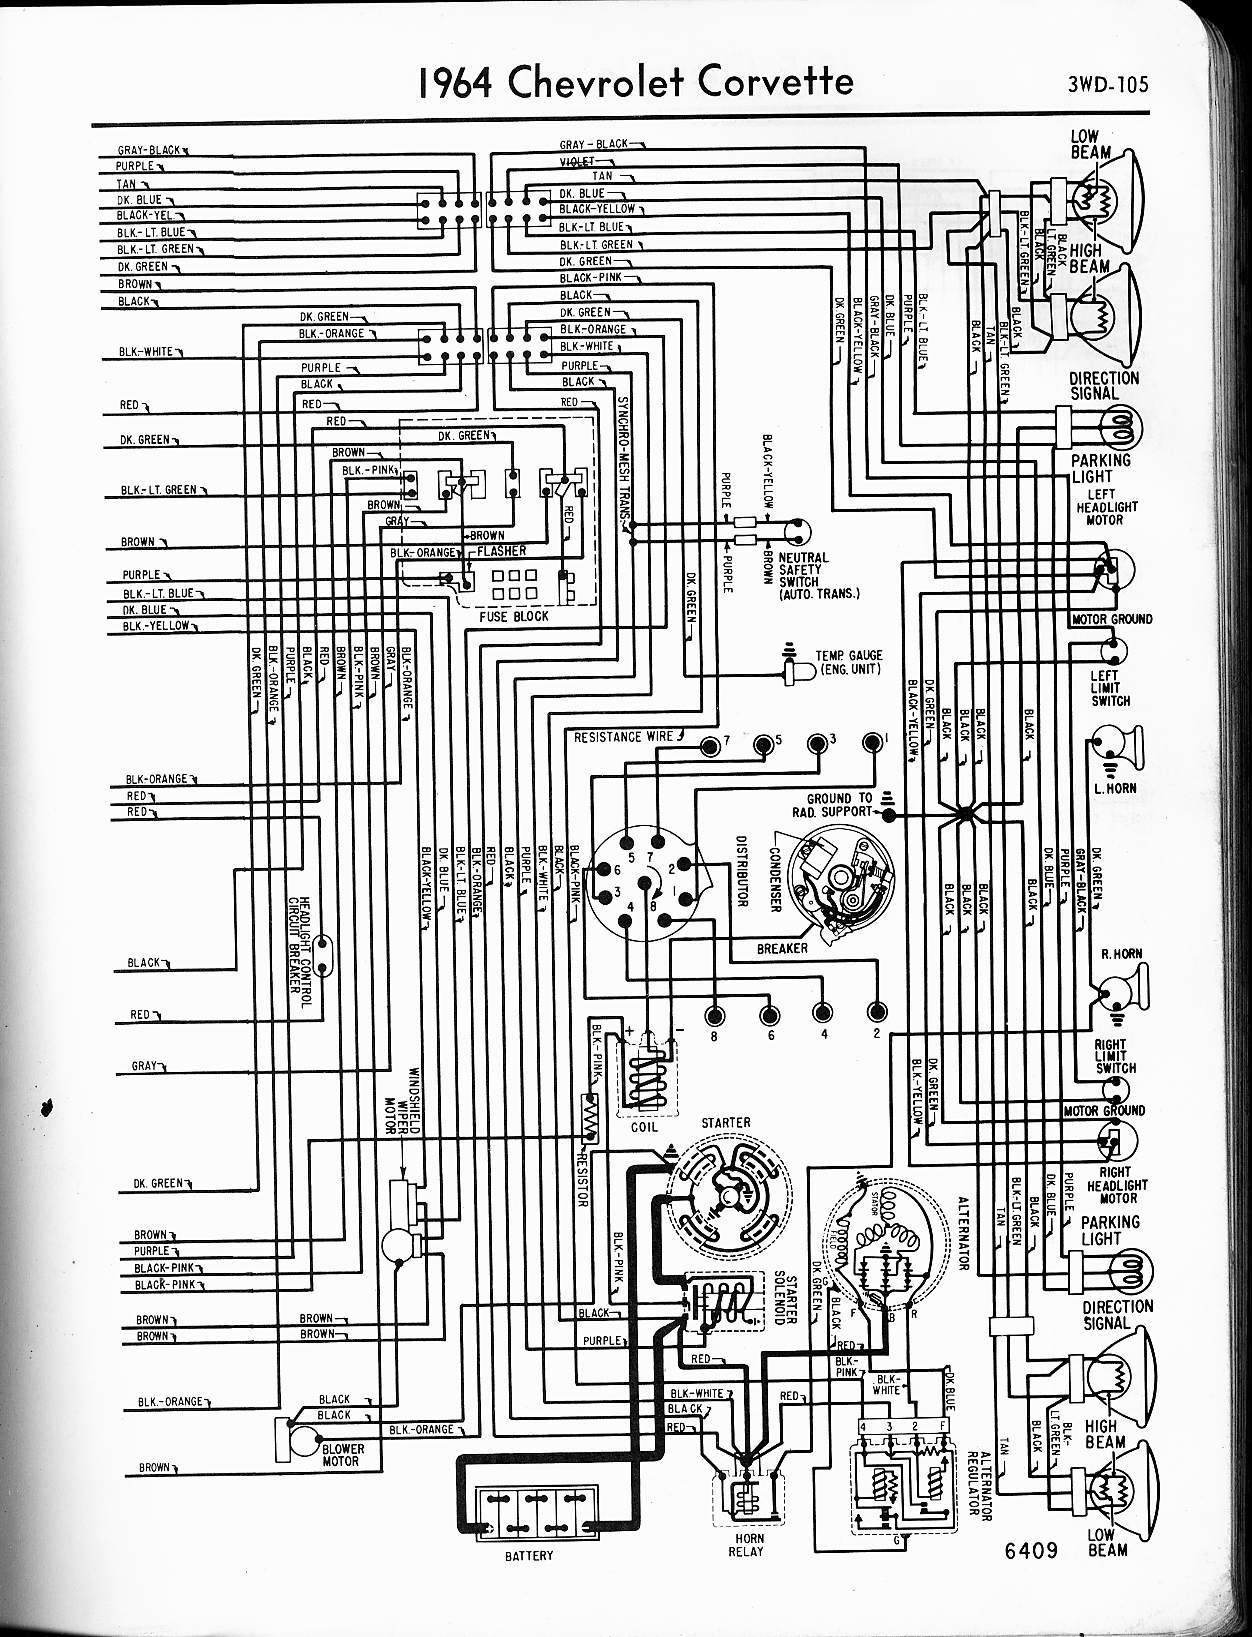 1973 Corvette Wiring Schematic - Trusted Wiring Diagrams •